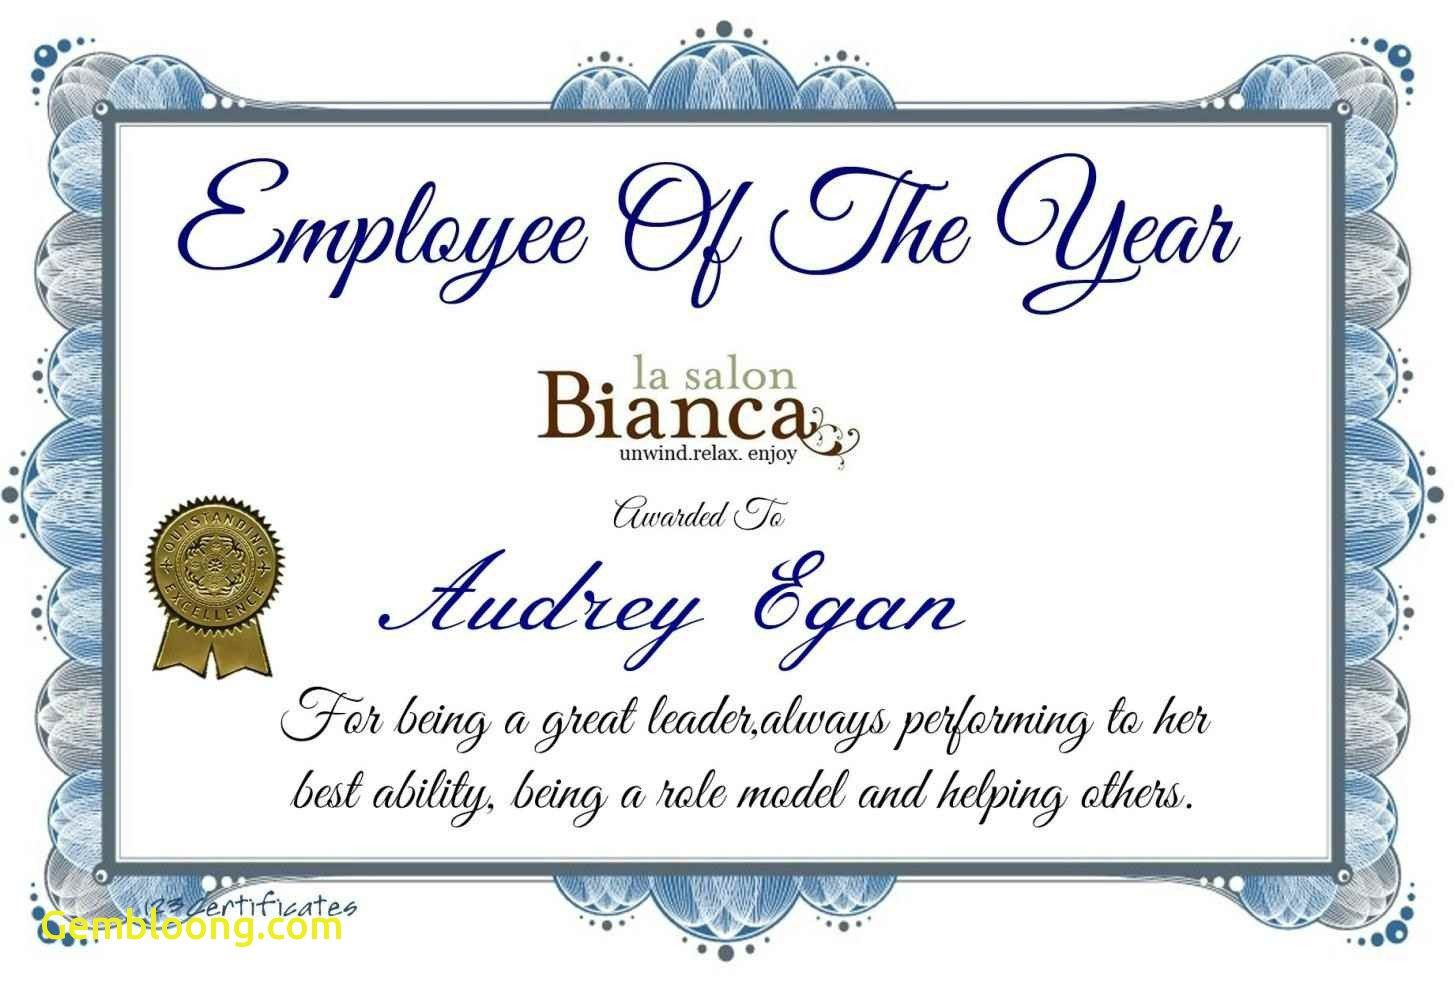 Best Employee Award Certificate Templates 3